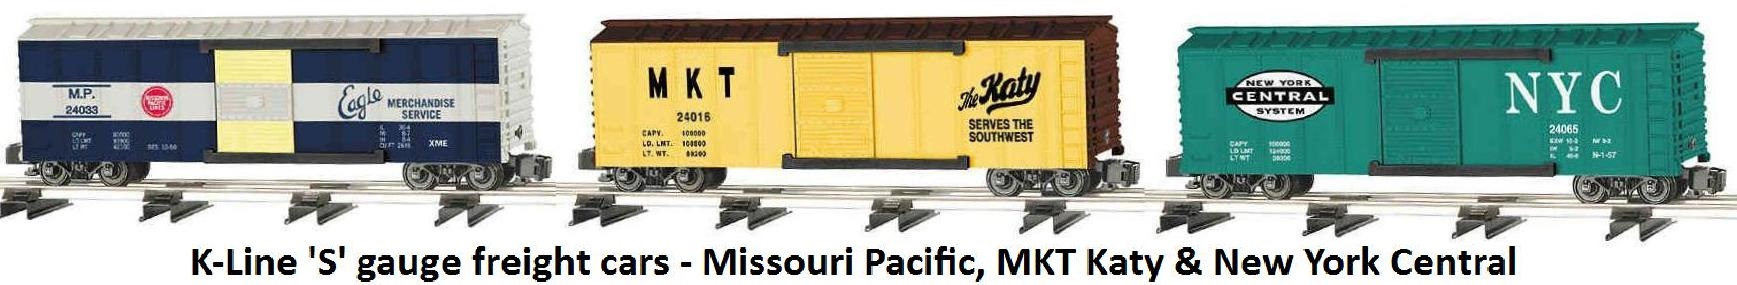 K-Line 'S' gauge boxcars circa 2003- Missouri Pacific Eagle, MKT Katy & New York Central